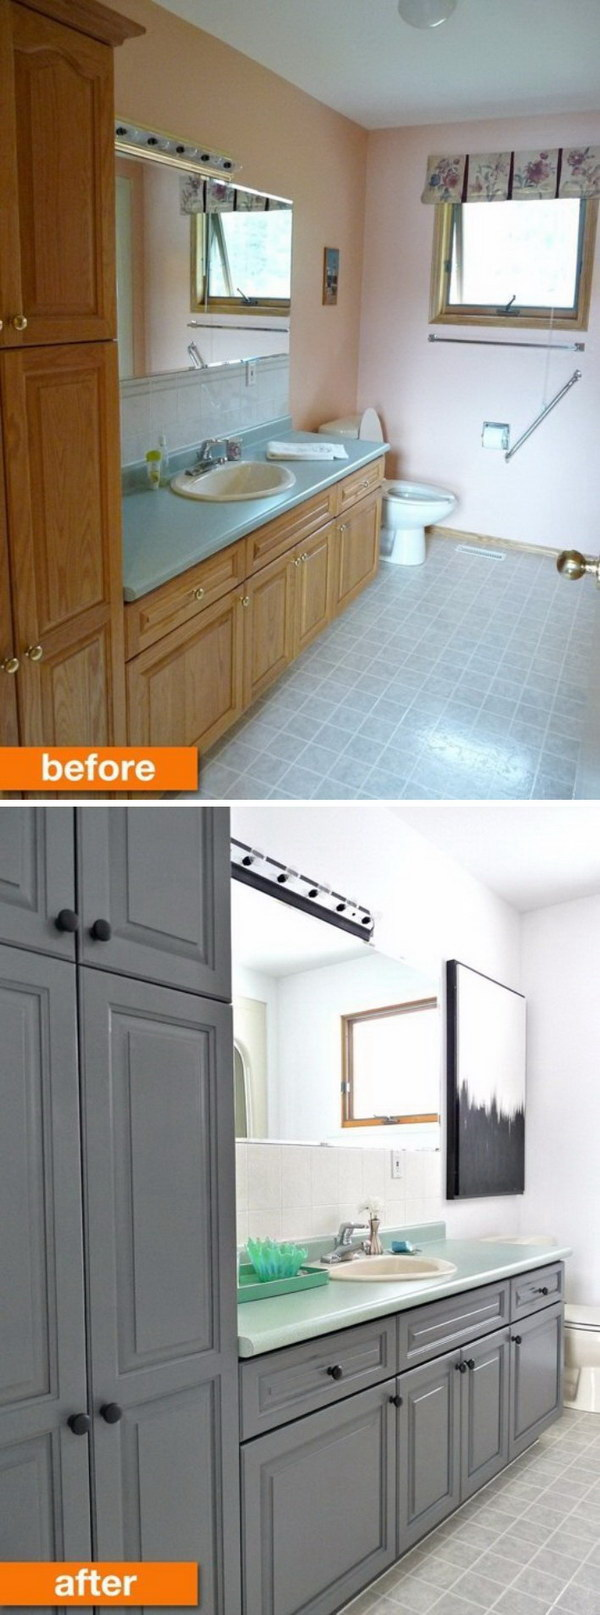 Before and After Makeovers: 30+ Awesome Bathroom ...